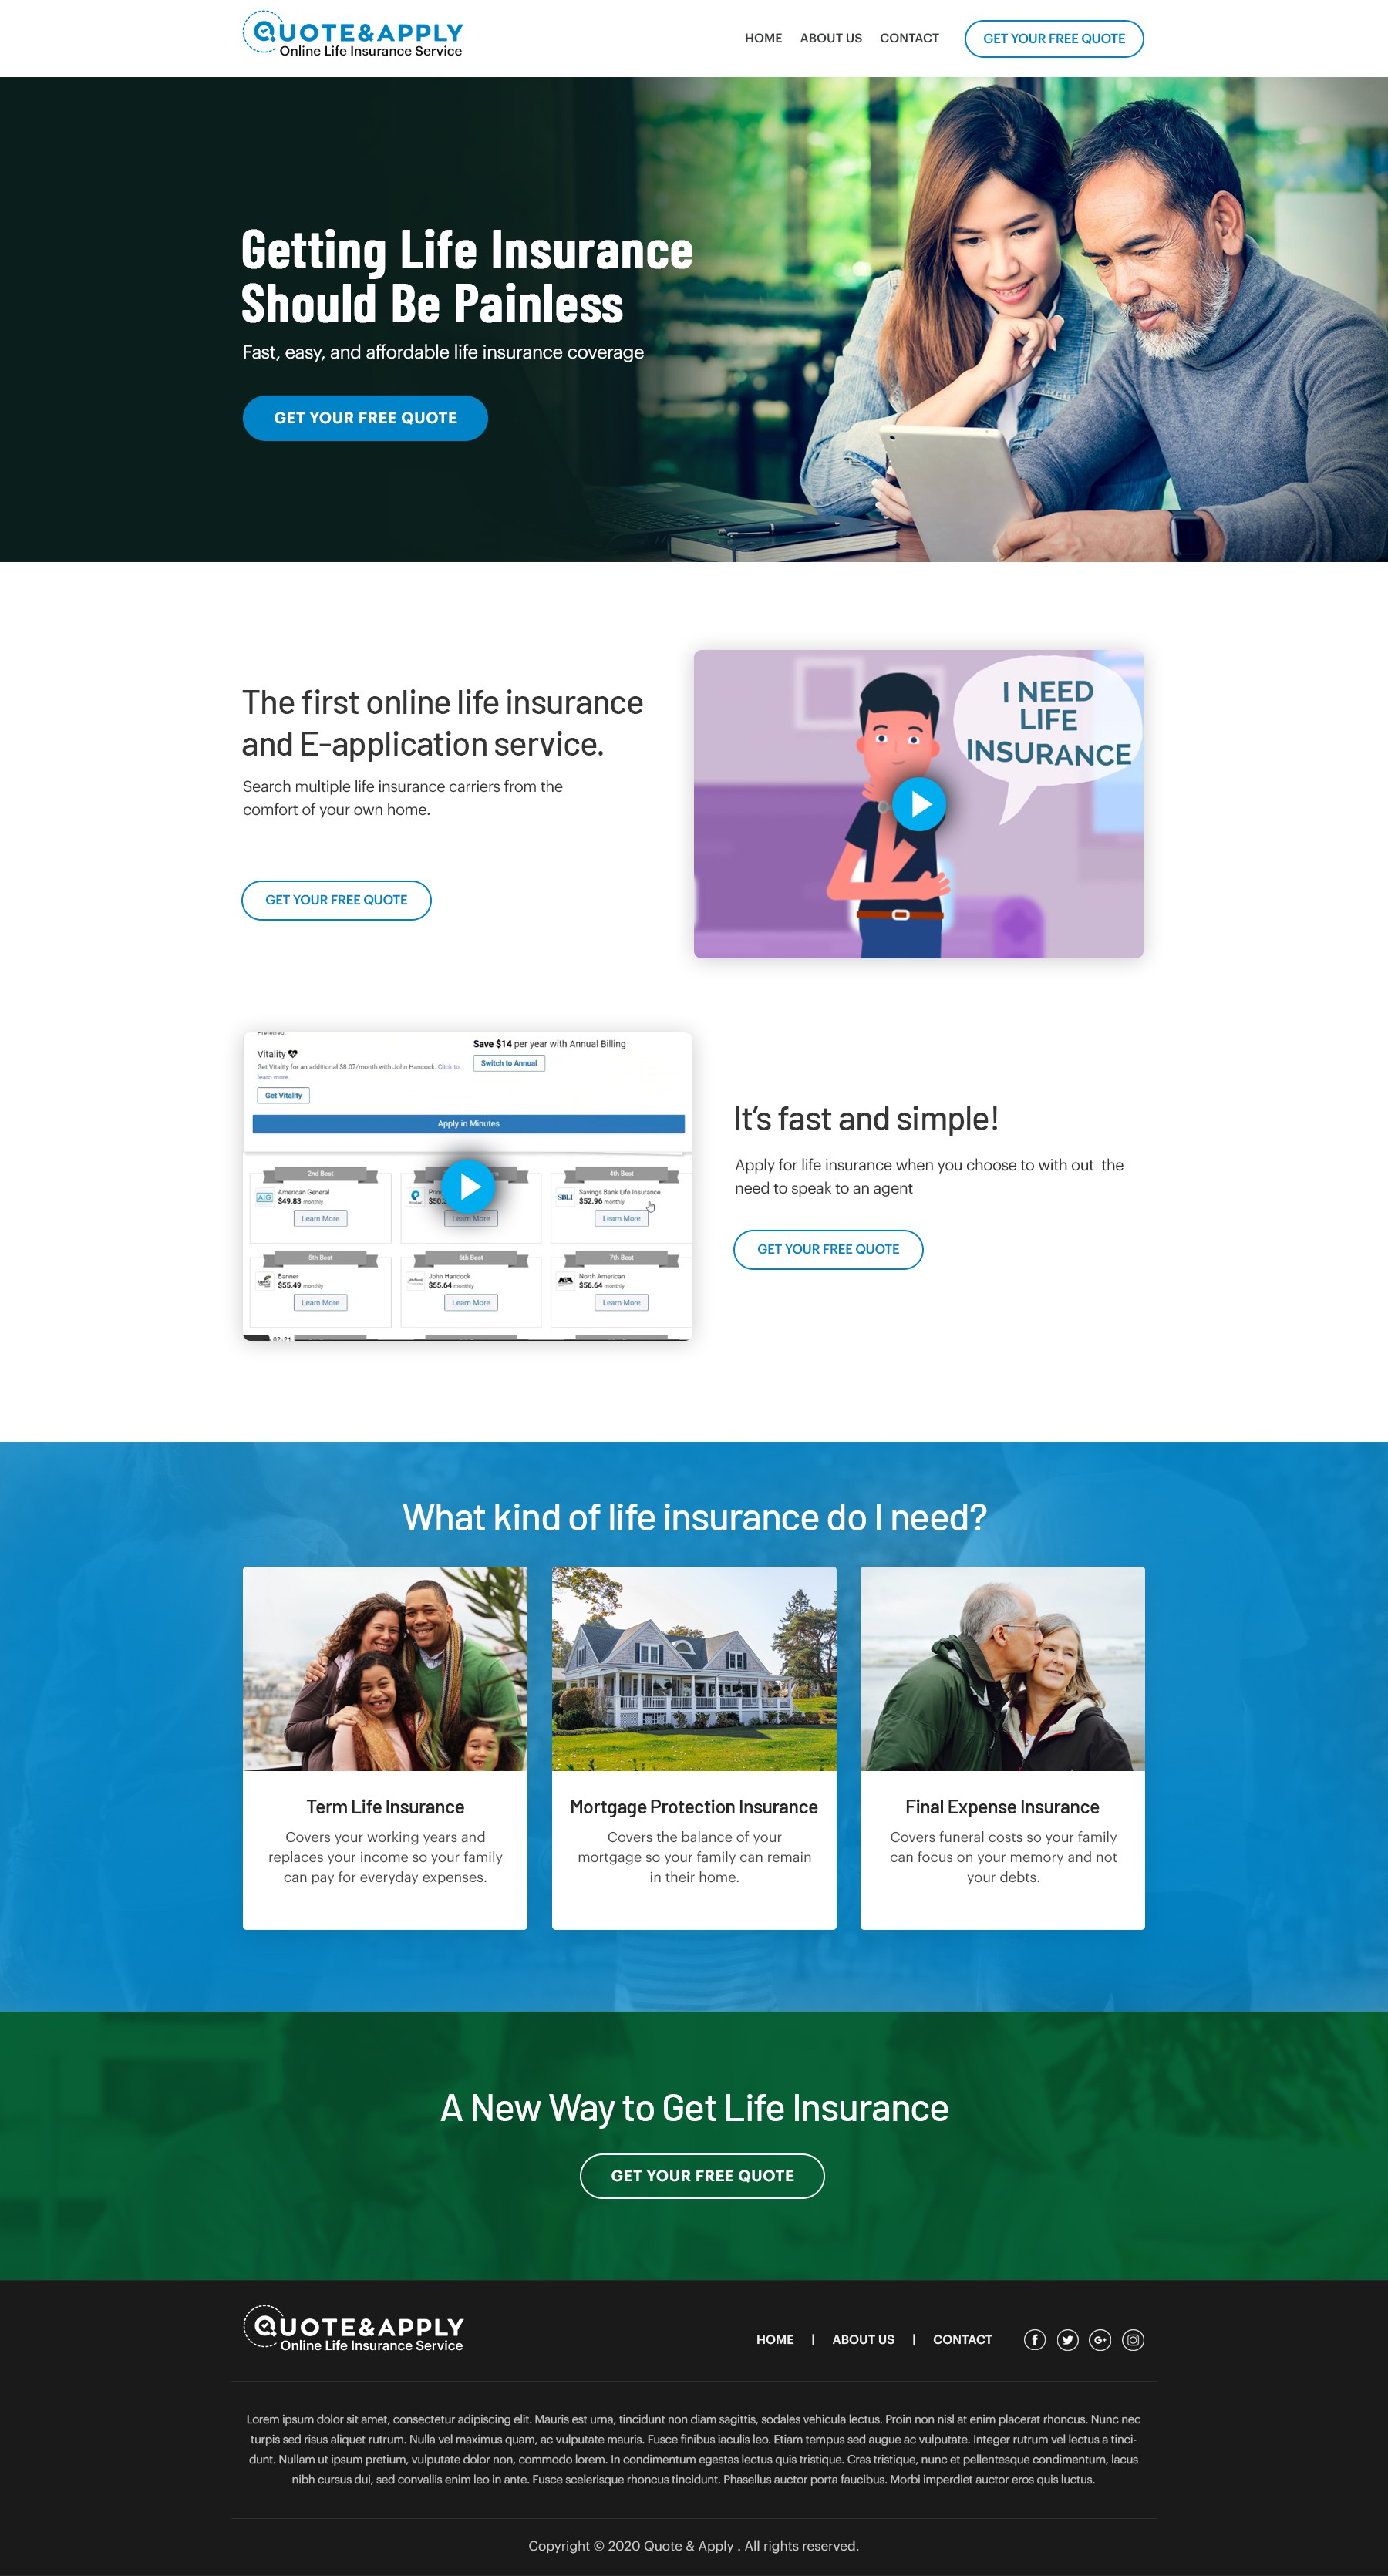 Mobile friendly landing page for life insurance